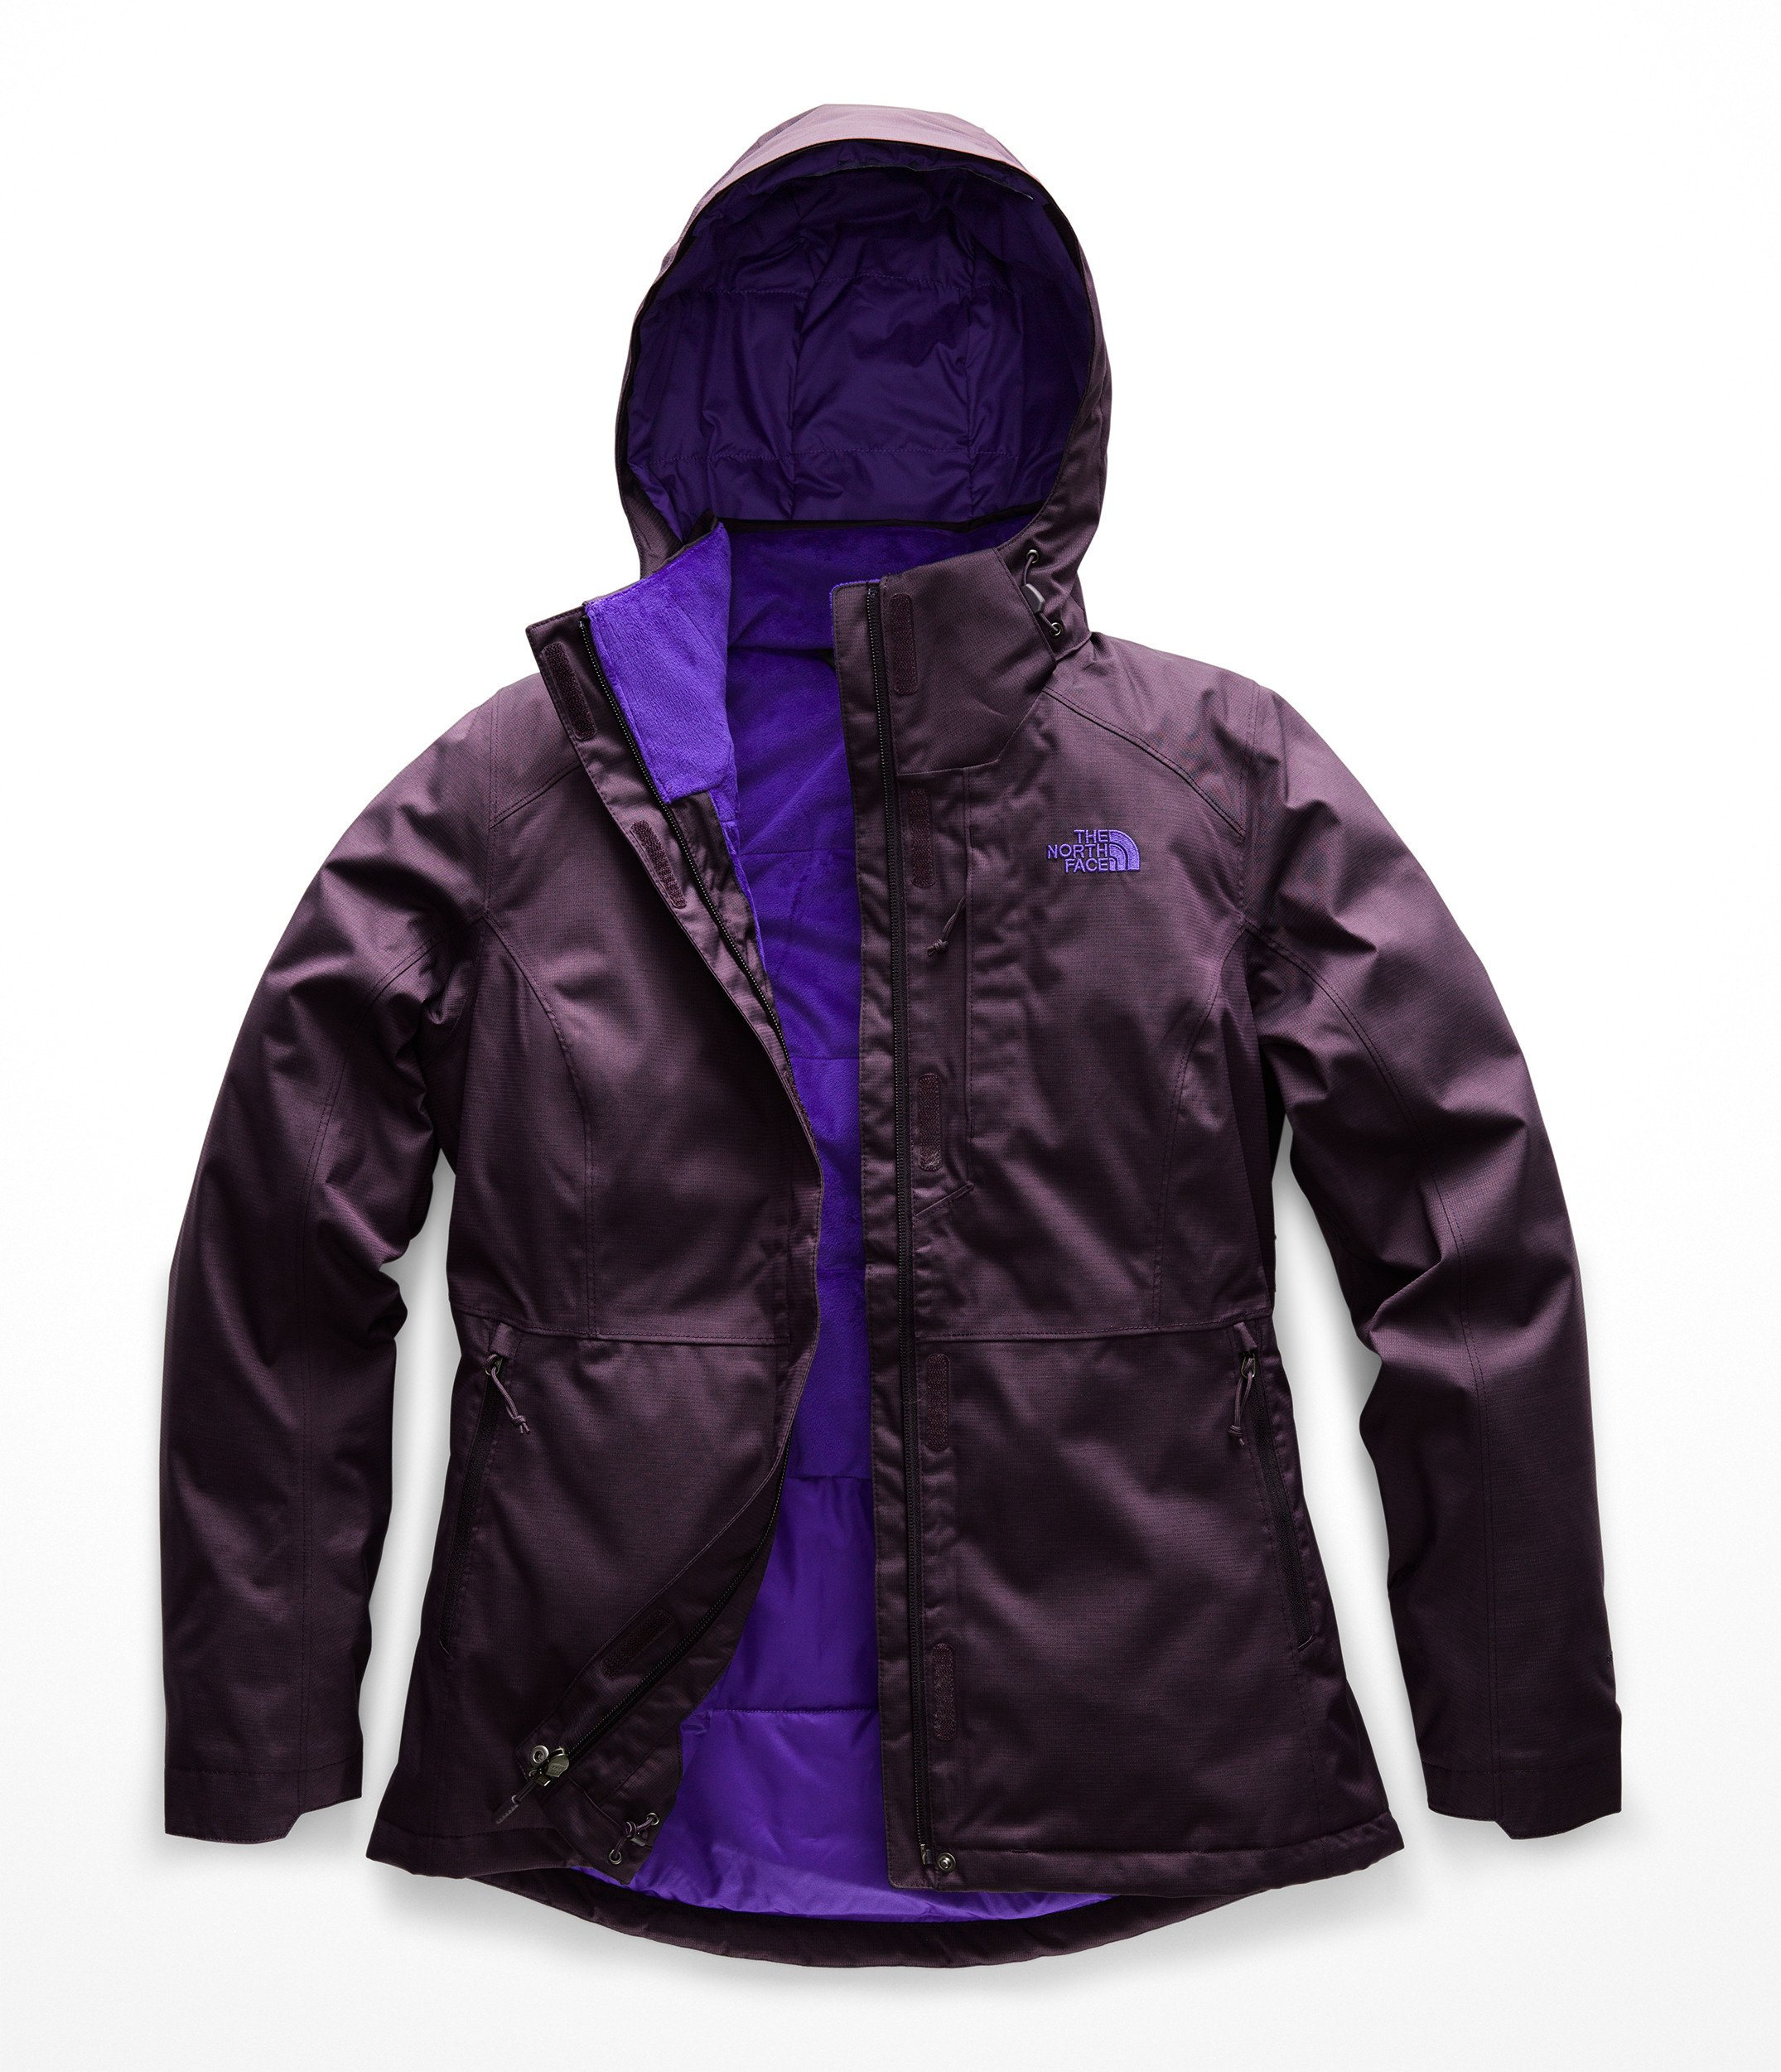 The North Face Women's Inlux 2.0 Insulated Jacket - Galaxy Purple Heather - L